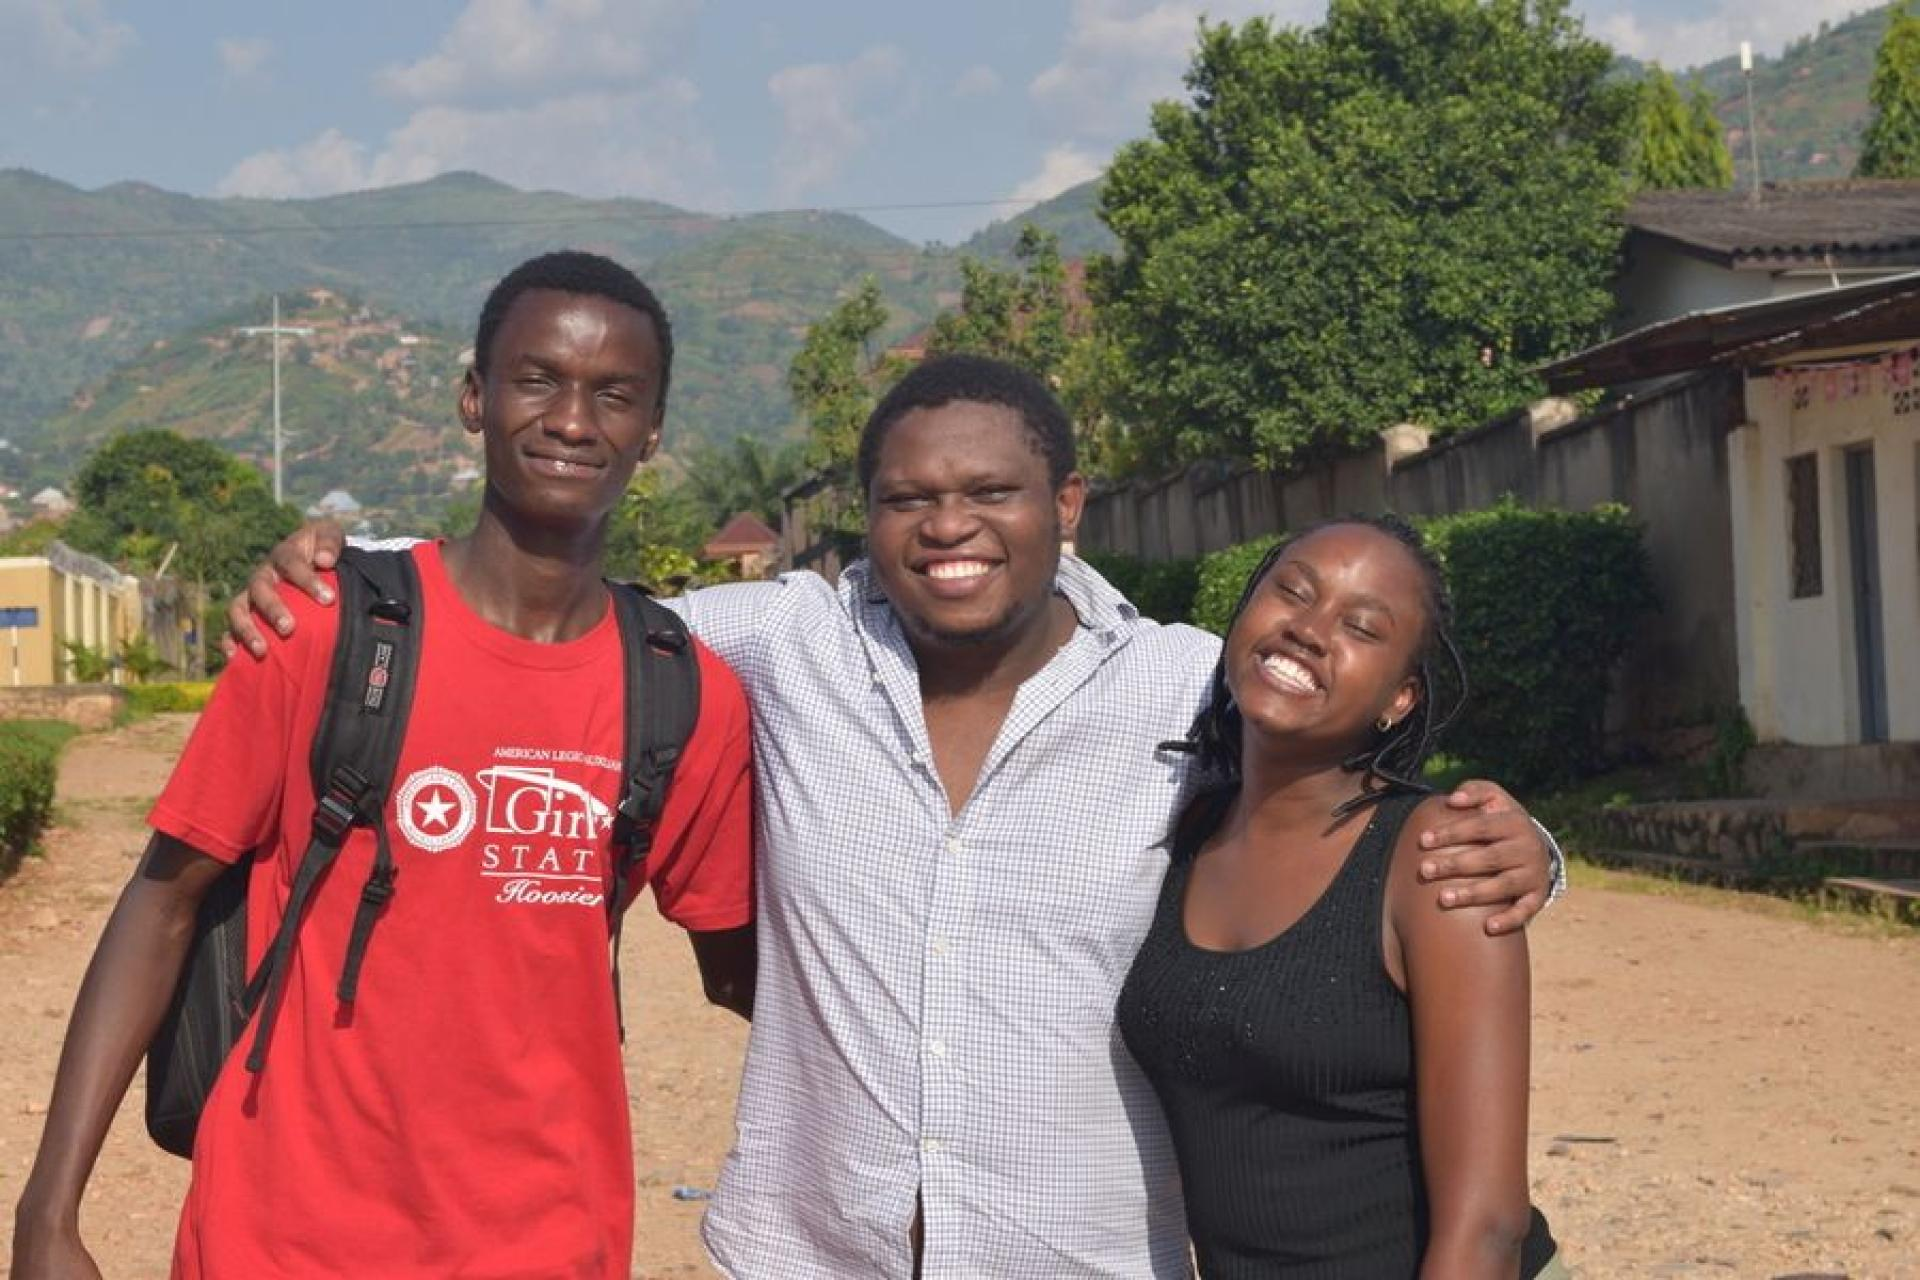 Gates Cambridge Scholar Etienne Mashuli poses with two of his students.